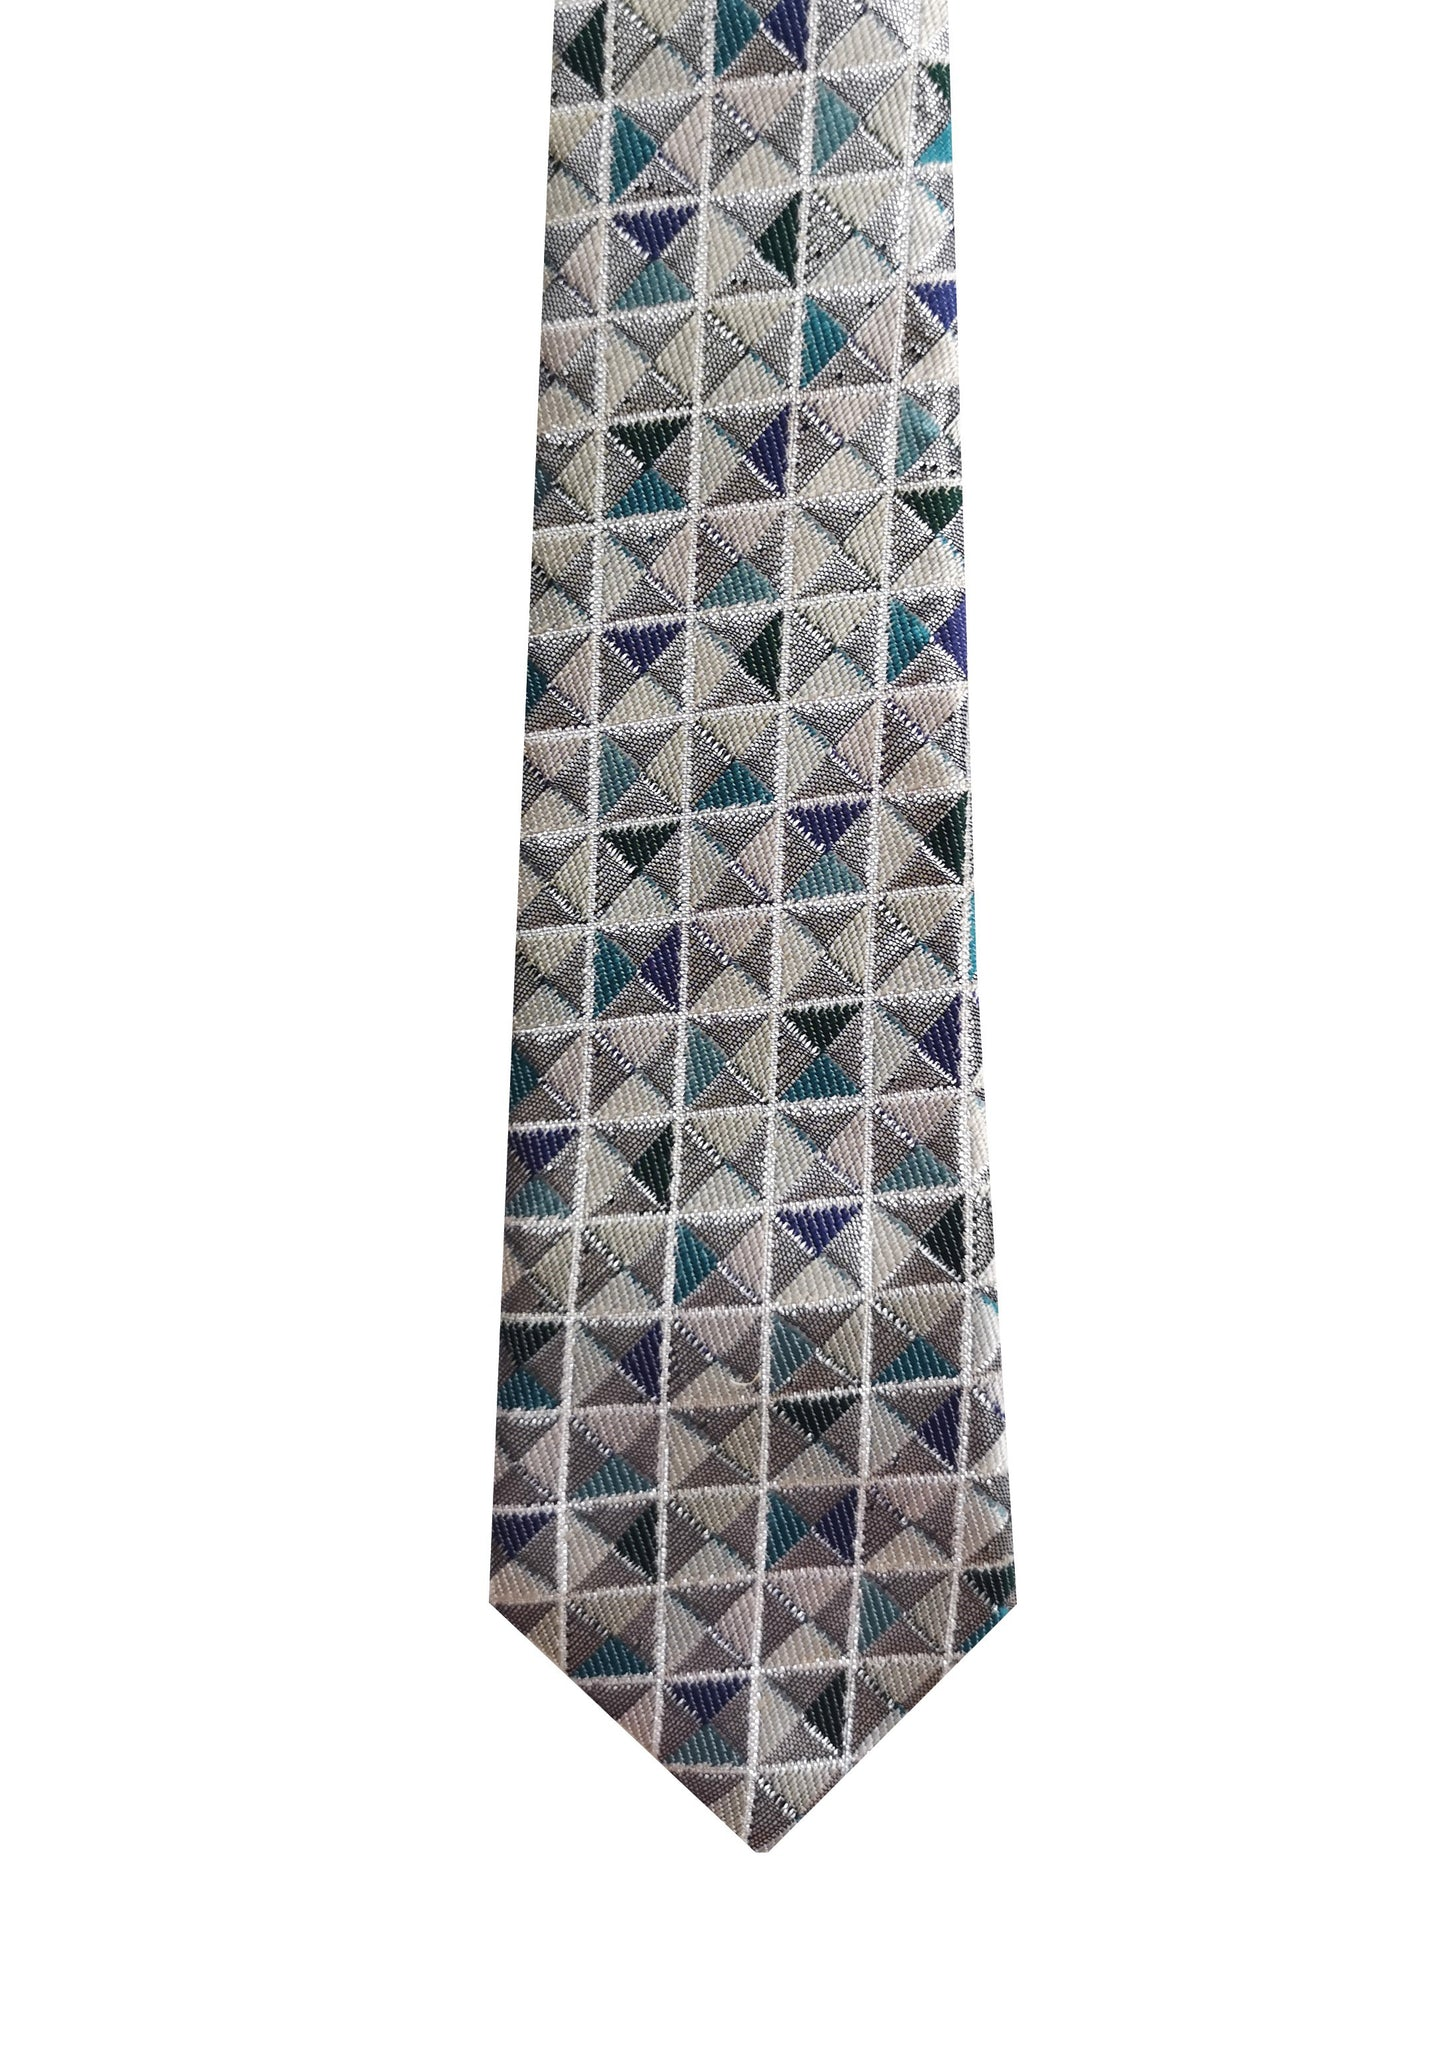 THE GIFFORD G TIE